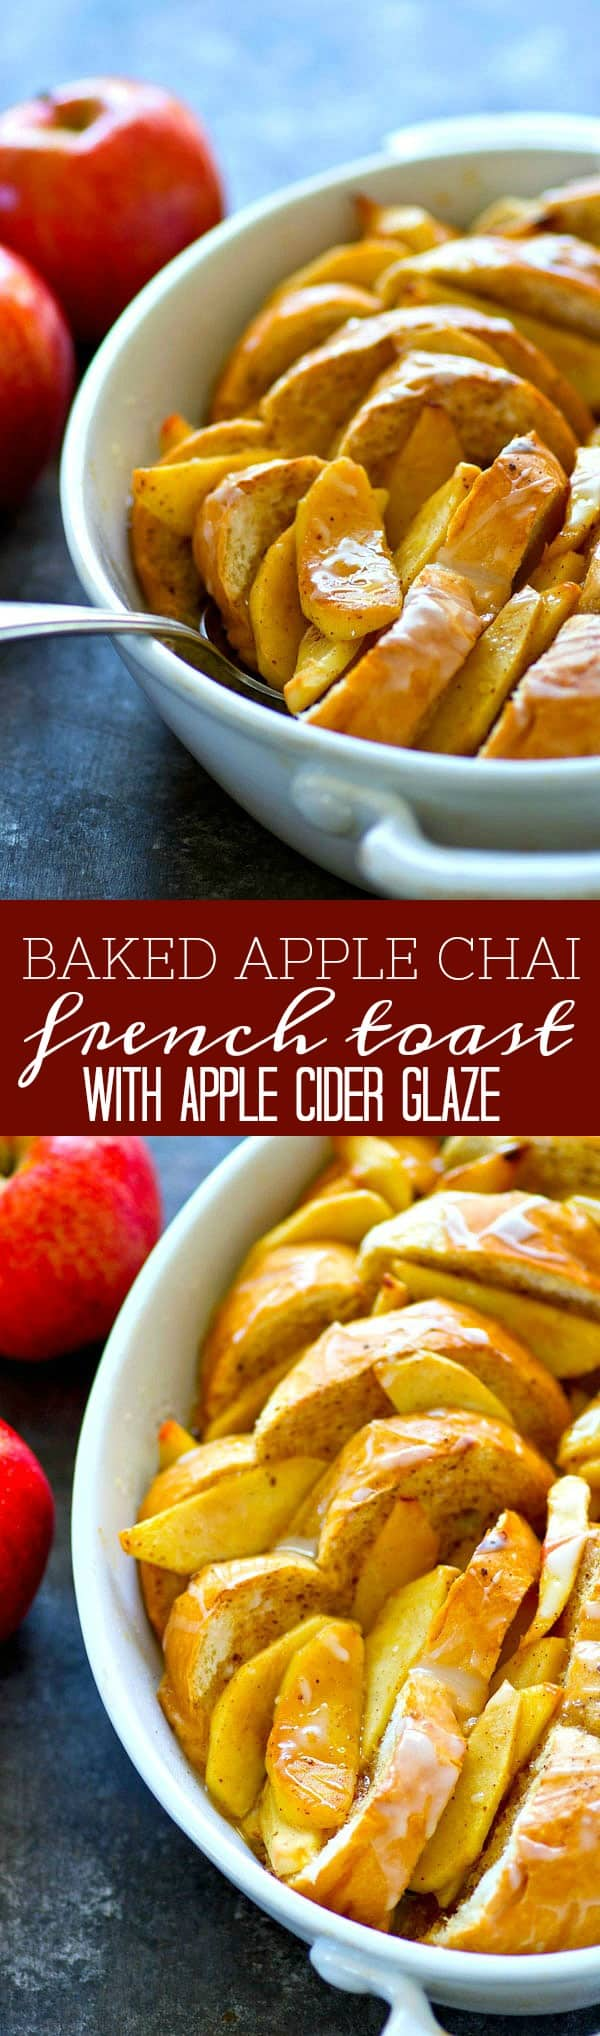 Baked with tender apples, tons of chai spices, and covered in an apple cider glaze, this baked apple chai french toast is one fall breakfast you don't wanna miss out on!